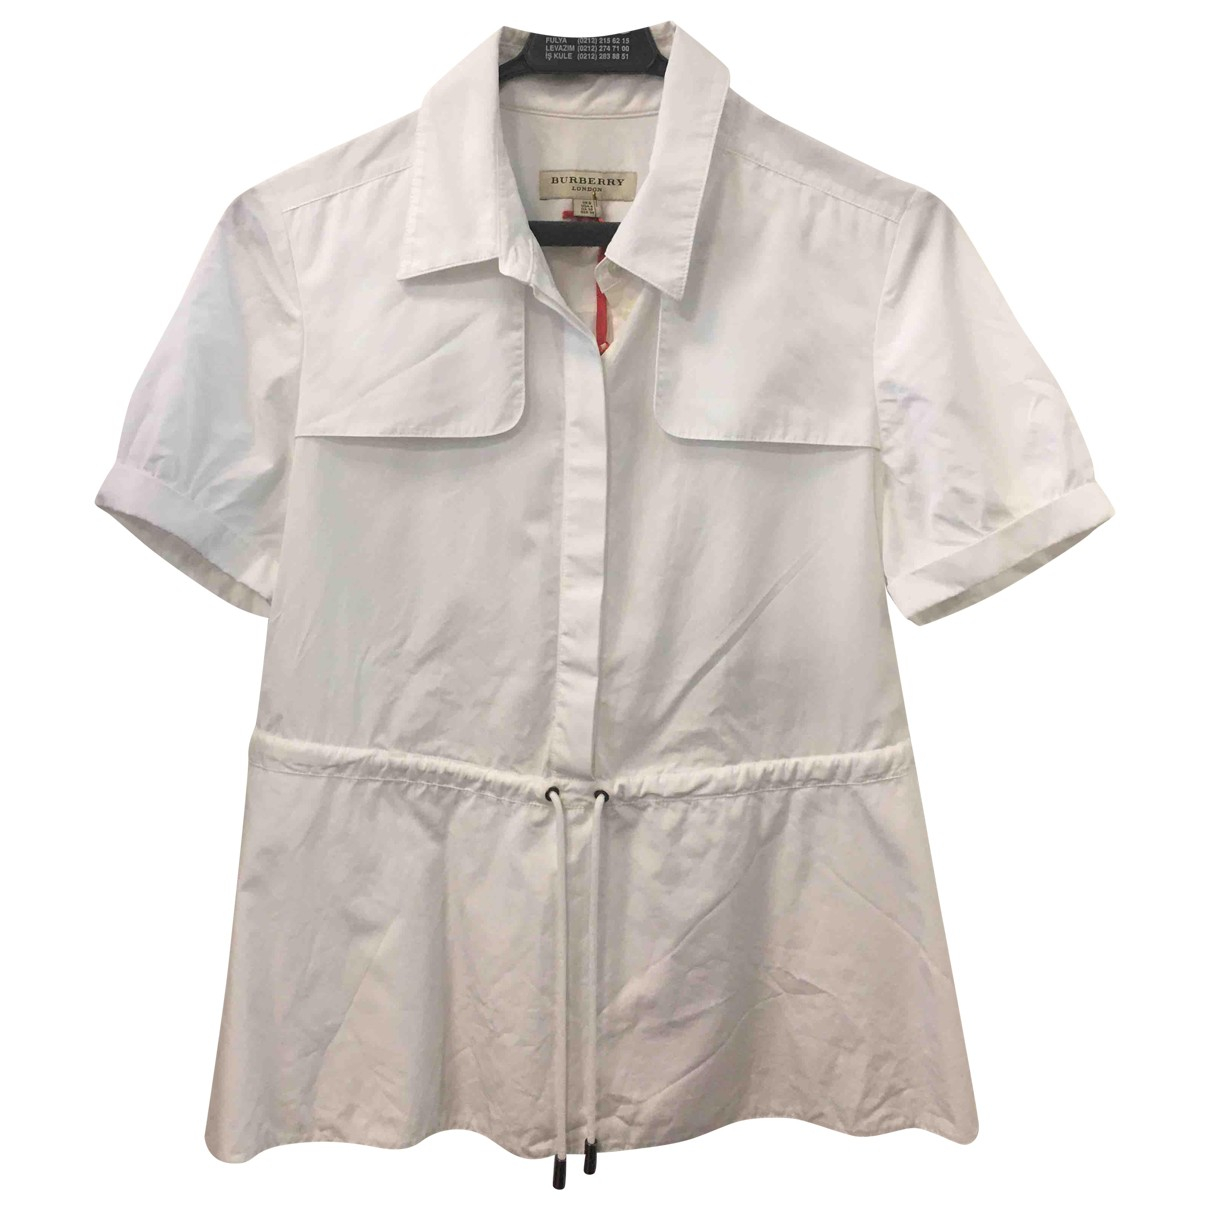 Burberry \N White Cotton  top for Women 6 UK